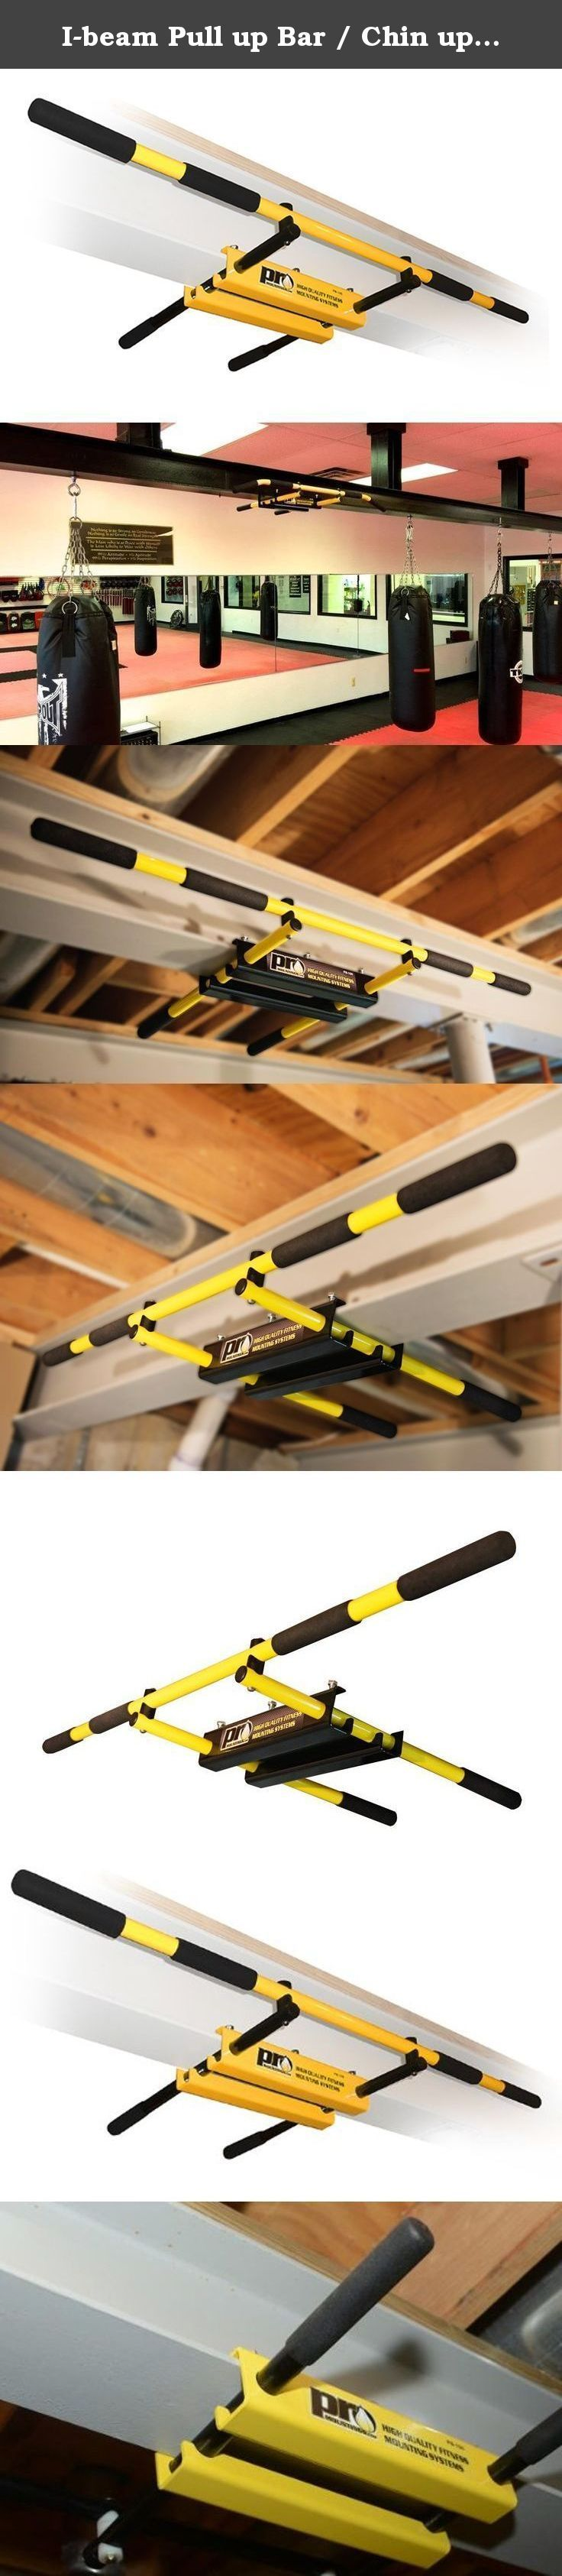 """I-beam Pull up Bar / Chin up Bar (Yellow Long Bar with Straight Ends) PRO Mountings. Designed by PRO Mountings the original I-beam Pull-Up Bar easily mount to any steel I-beam from 3-1/2"""" to 10"""" wide. It has 3 Different Grip Positions and has a certified and tested 500lb Weight Limit!! All Mounting Hardware is Included. Used by professional trainers, athletes, military troops and commercial gyms this pull up bar is designed to last! We offer a 30 day money back guarantee and a lifetime..."""